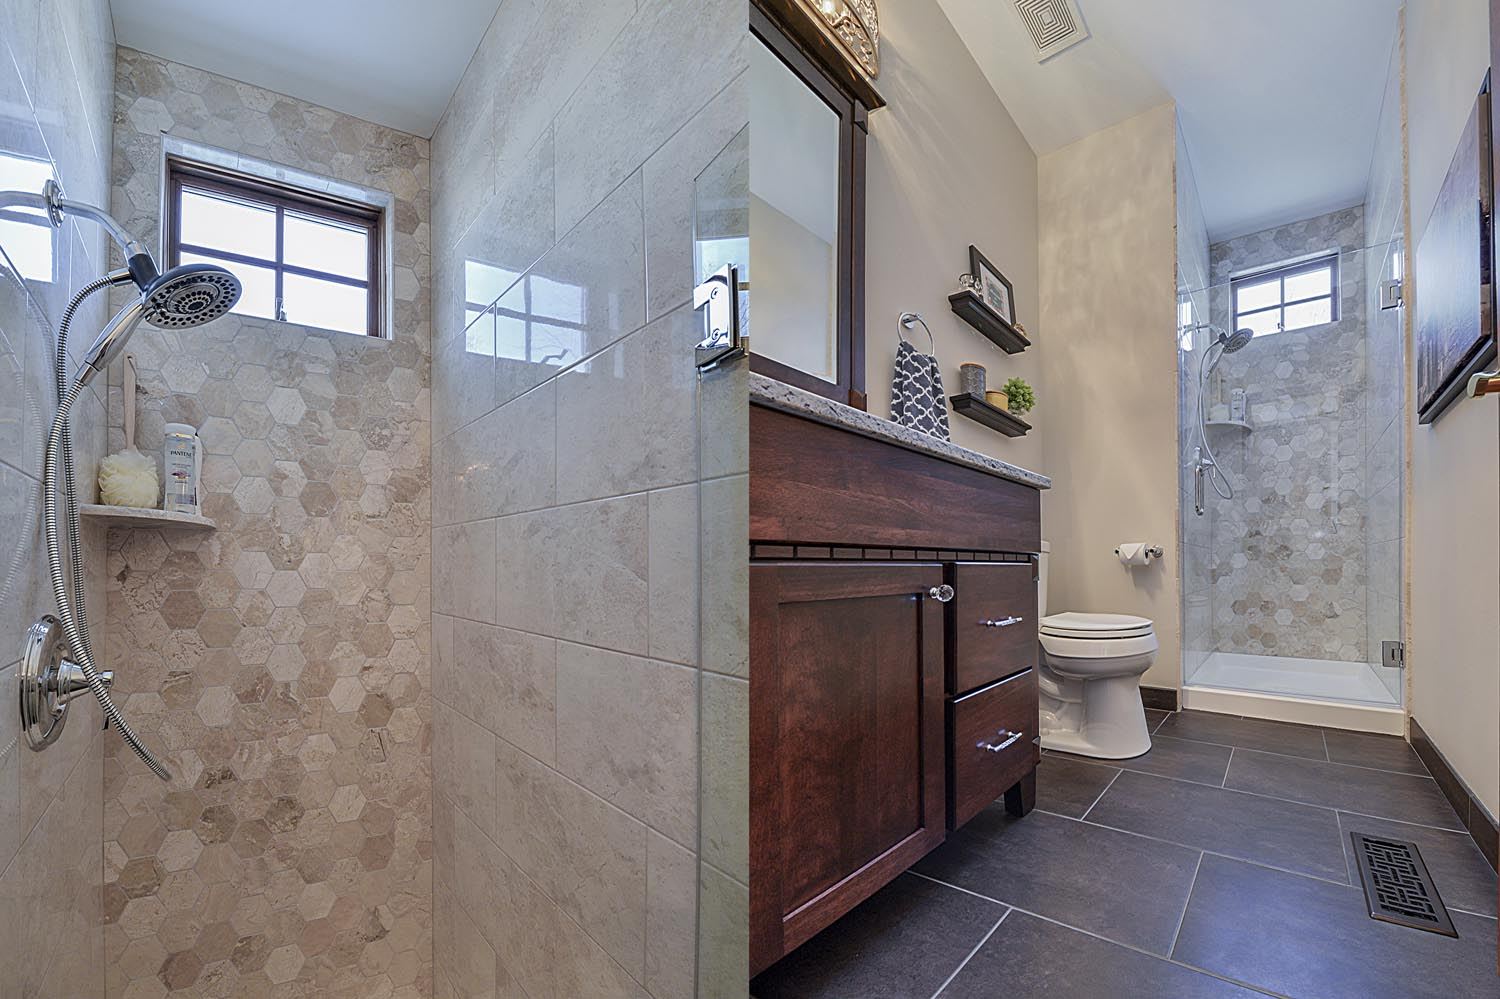 Bathroom Remodeling Tile Cabinet Granite Quartz Ideas Glen Ellyn IL Sebring  Services ...